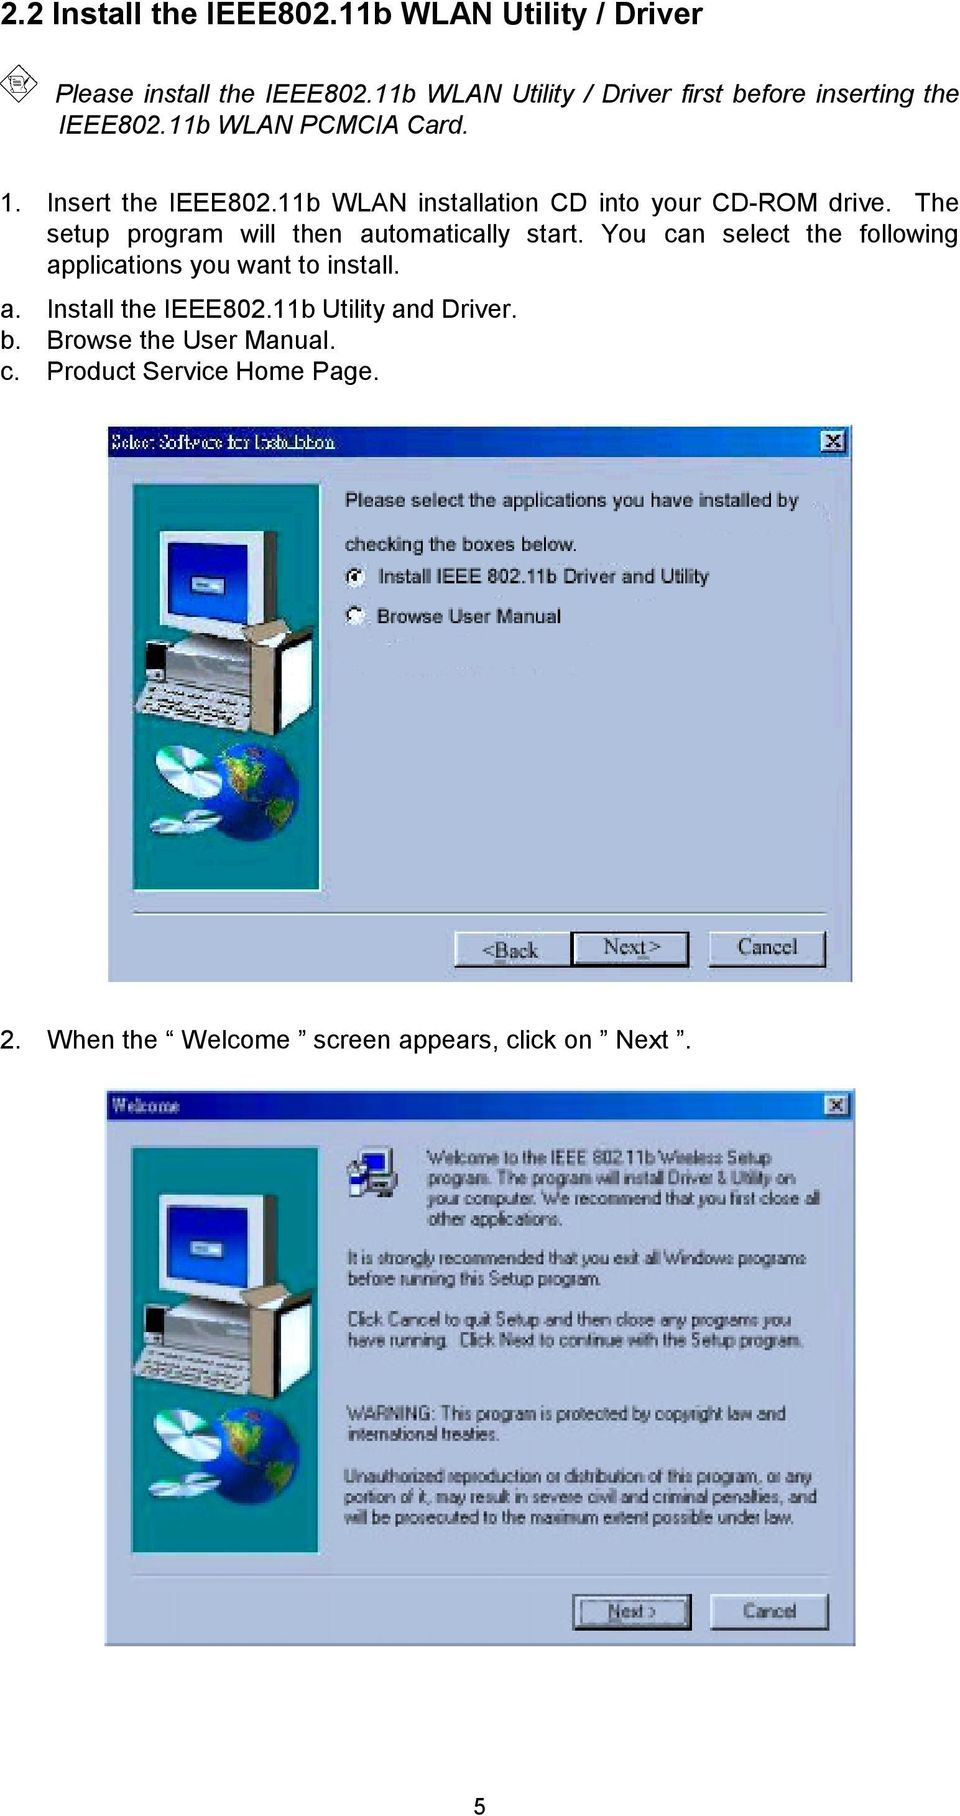 11b WLAN installation CD into your CD-ROM drive. The setup program will then automatically start.